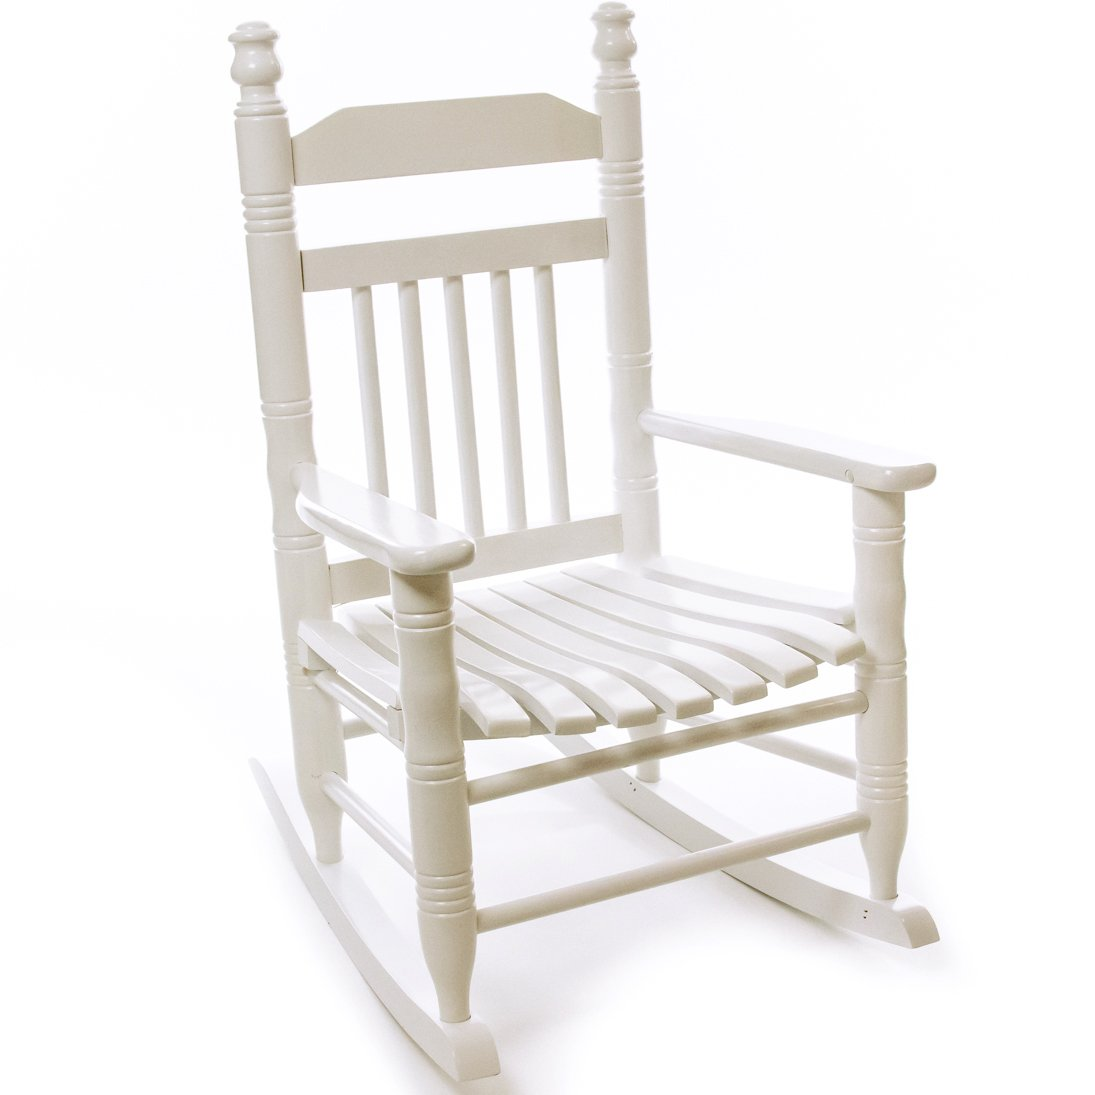 Slat Child Rocking Chair   Pure White | Home Furniture | Indoor Furniture | Rocking  Chairs | Cracker Barrel Old Country Store   Cracker Barrel Old Country ...